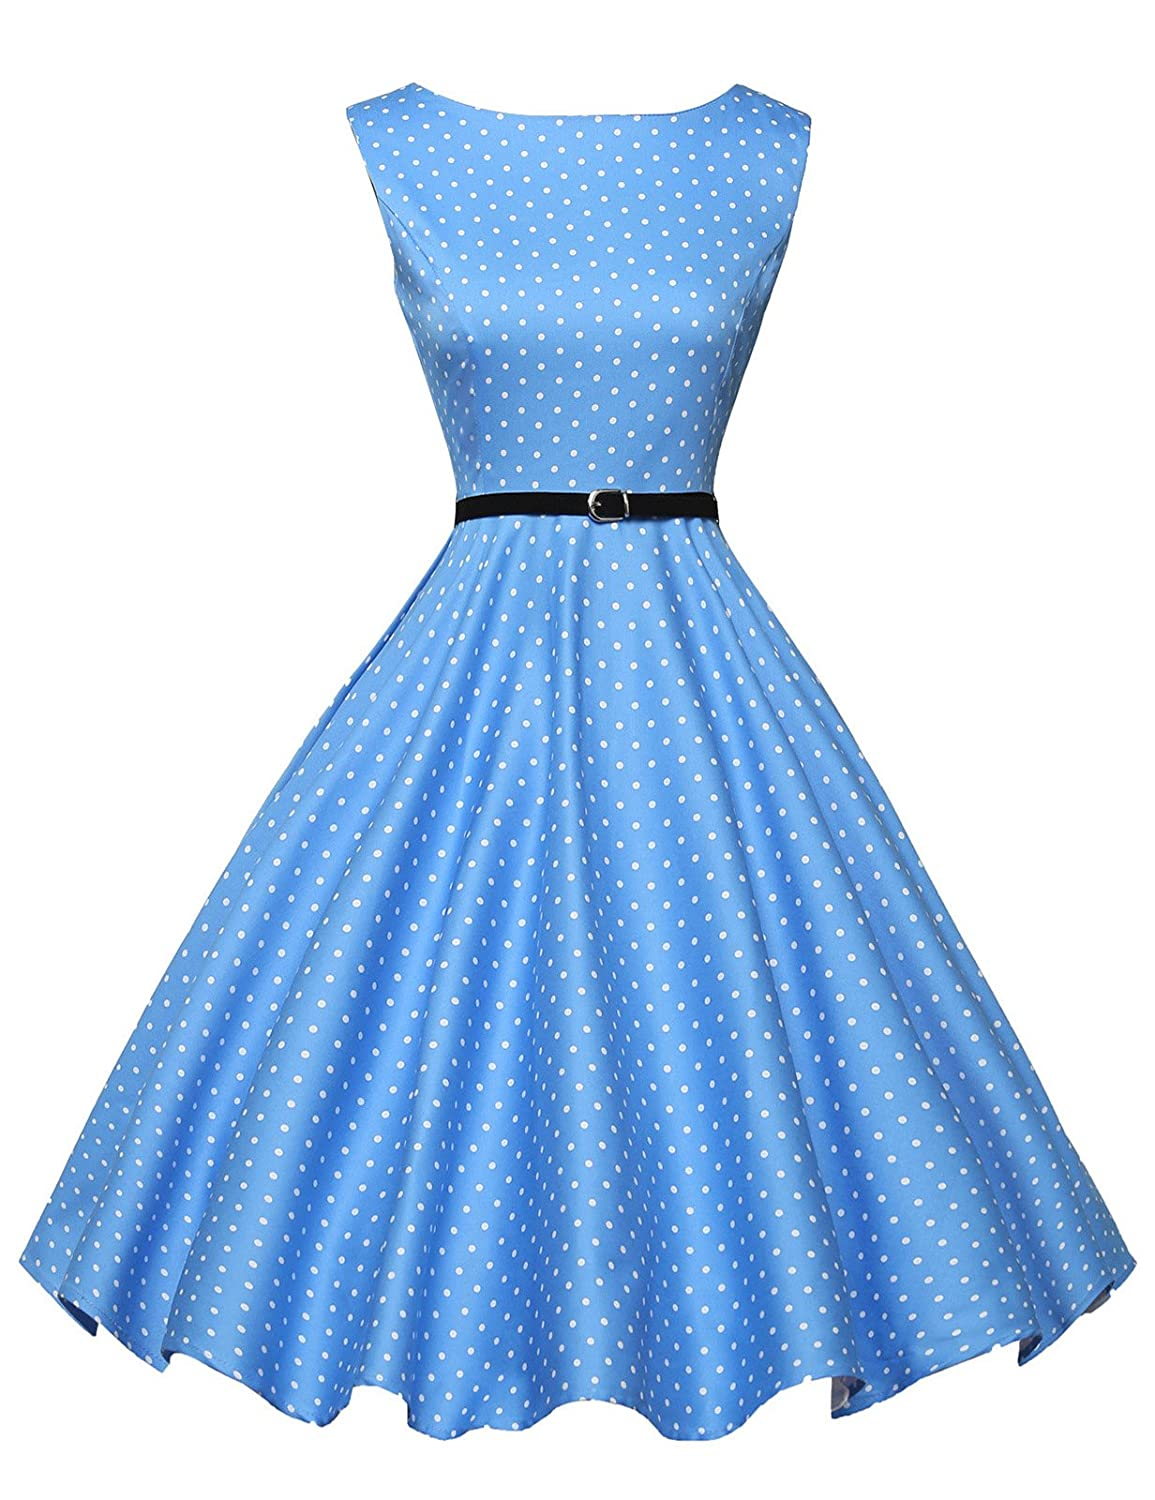 Vintage Polka Dot Dresses – Ditsy 50s Prints GRACE KARIN BoatNeck Sleeveless Vintage Tea Dress with Belt $30.99 AT vintagedancer.com